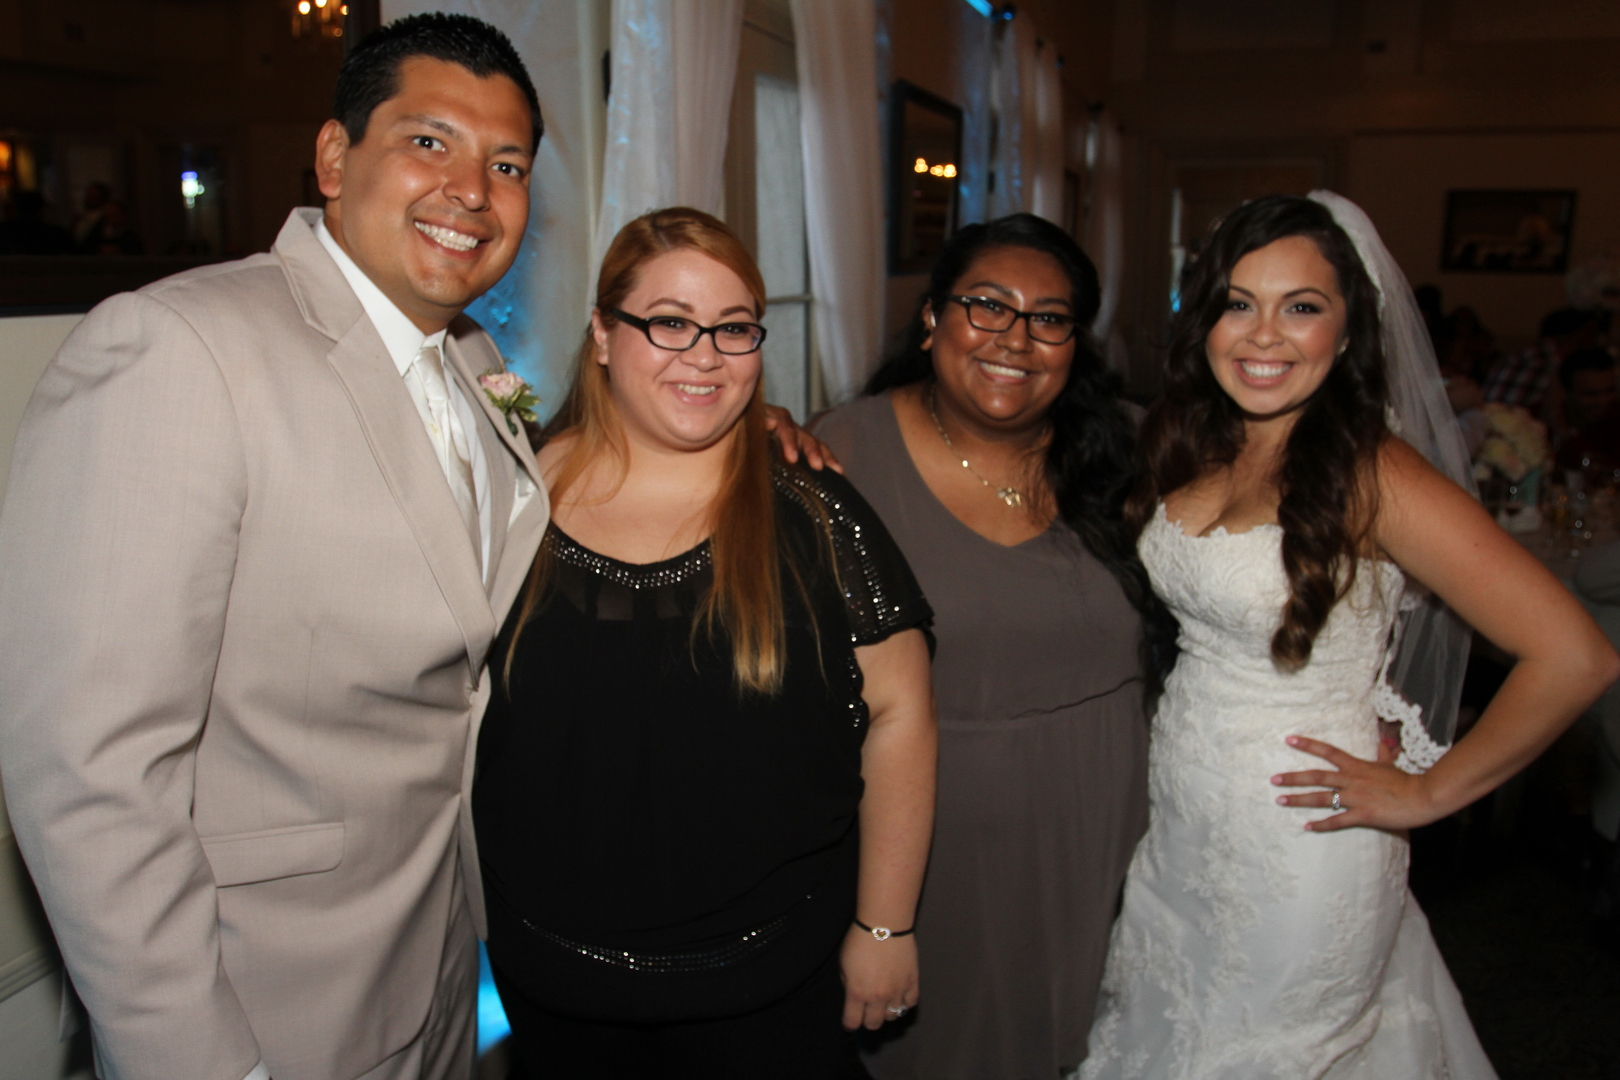 Jorge and Nancy with their coordinators Angela and Silvia from  Rock n' Willow Events